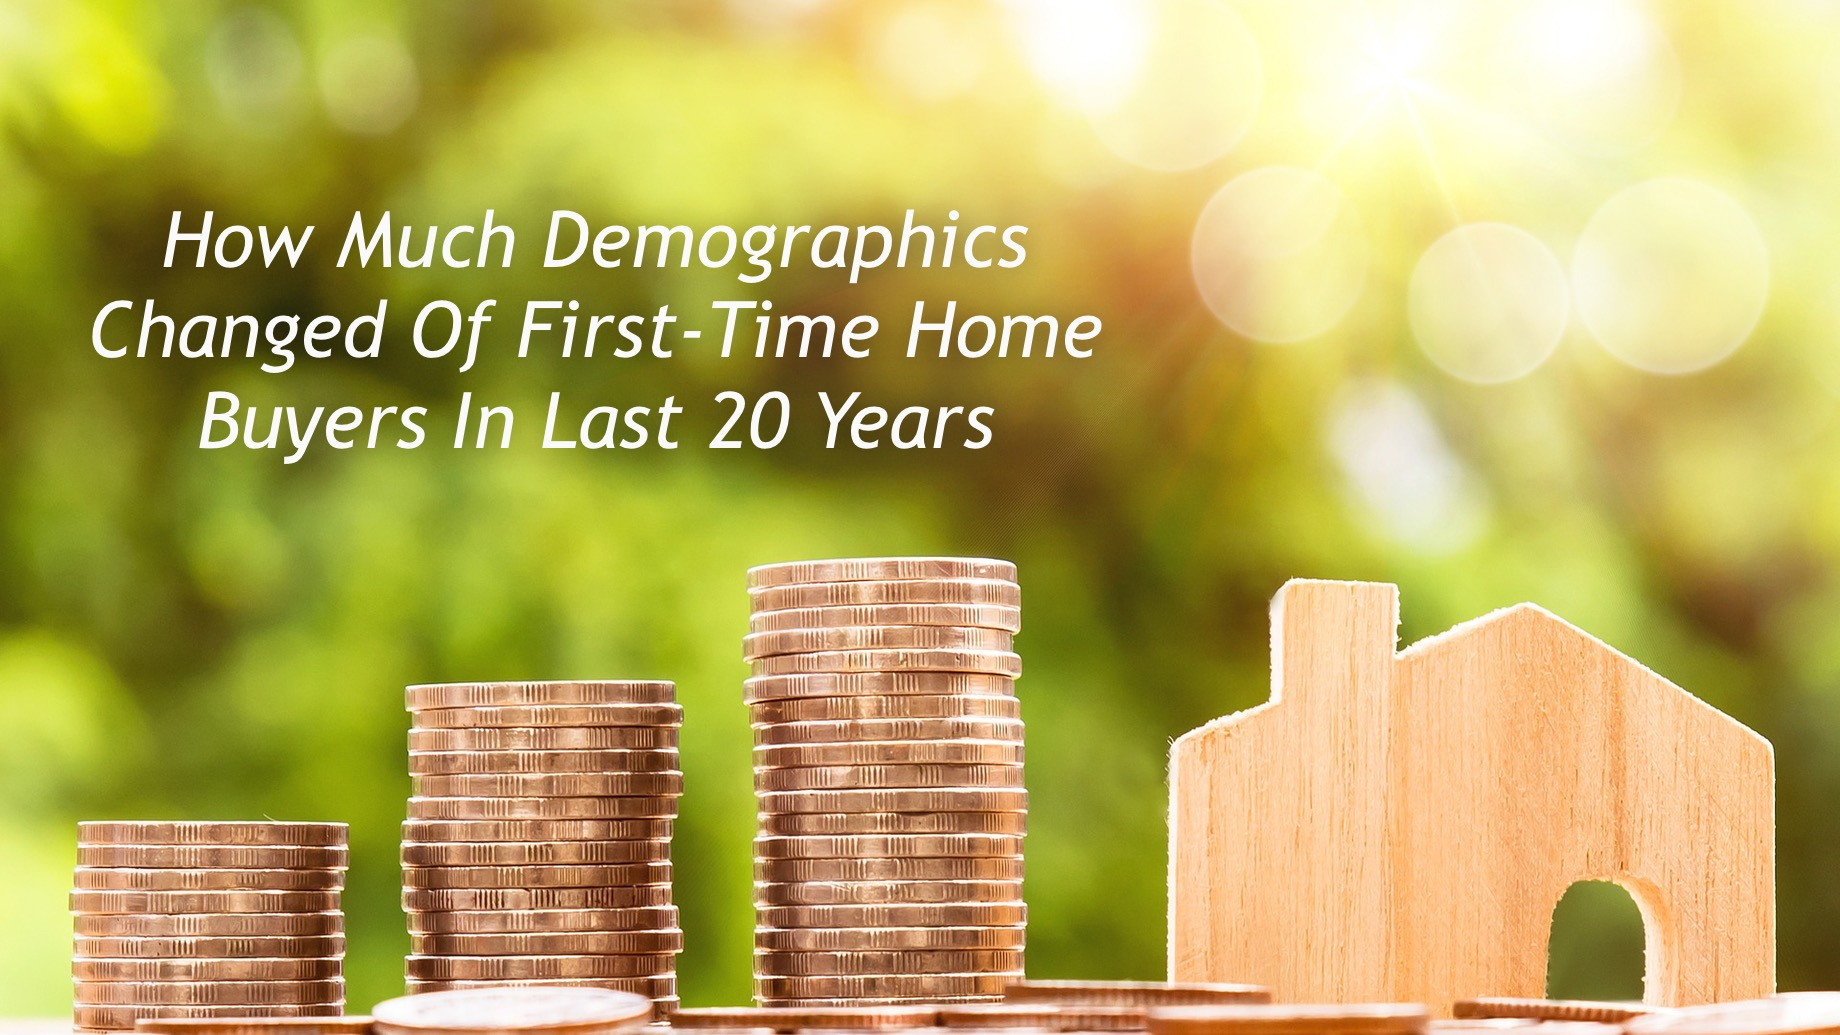 How Much Demographics Changed Of First-Time Home Buyers In Last 20 Years